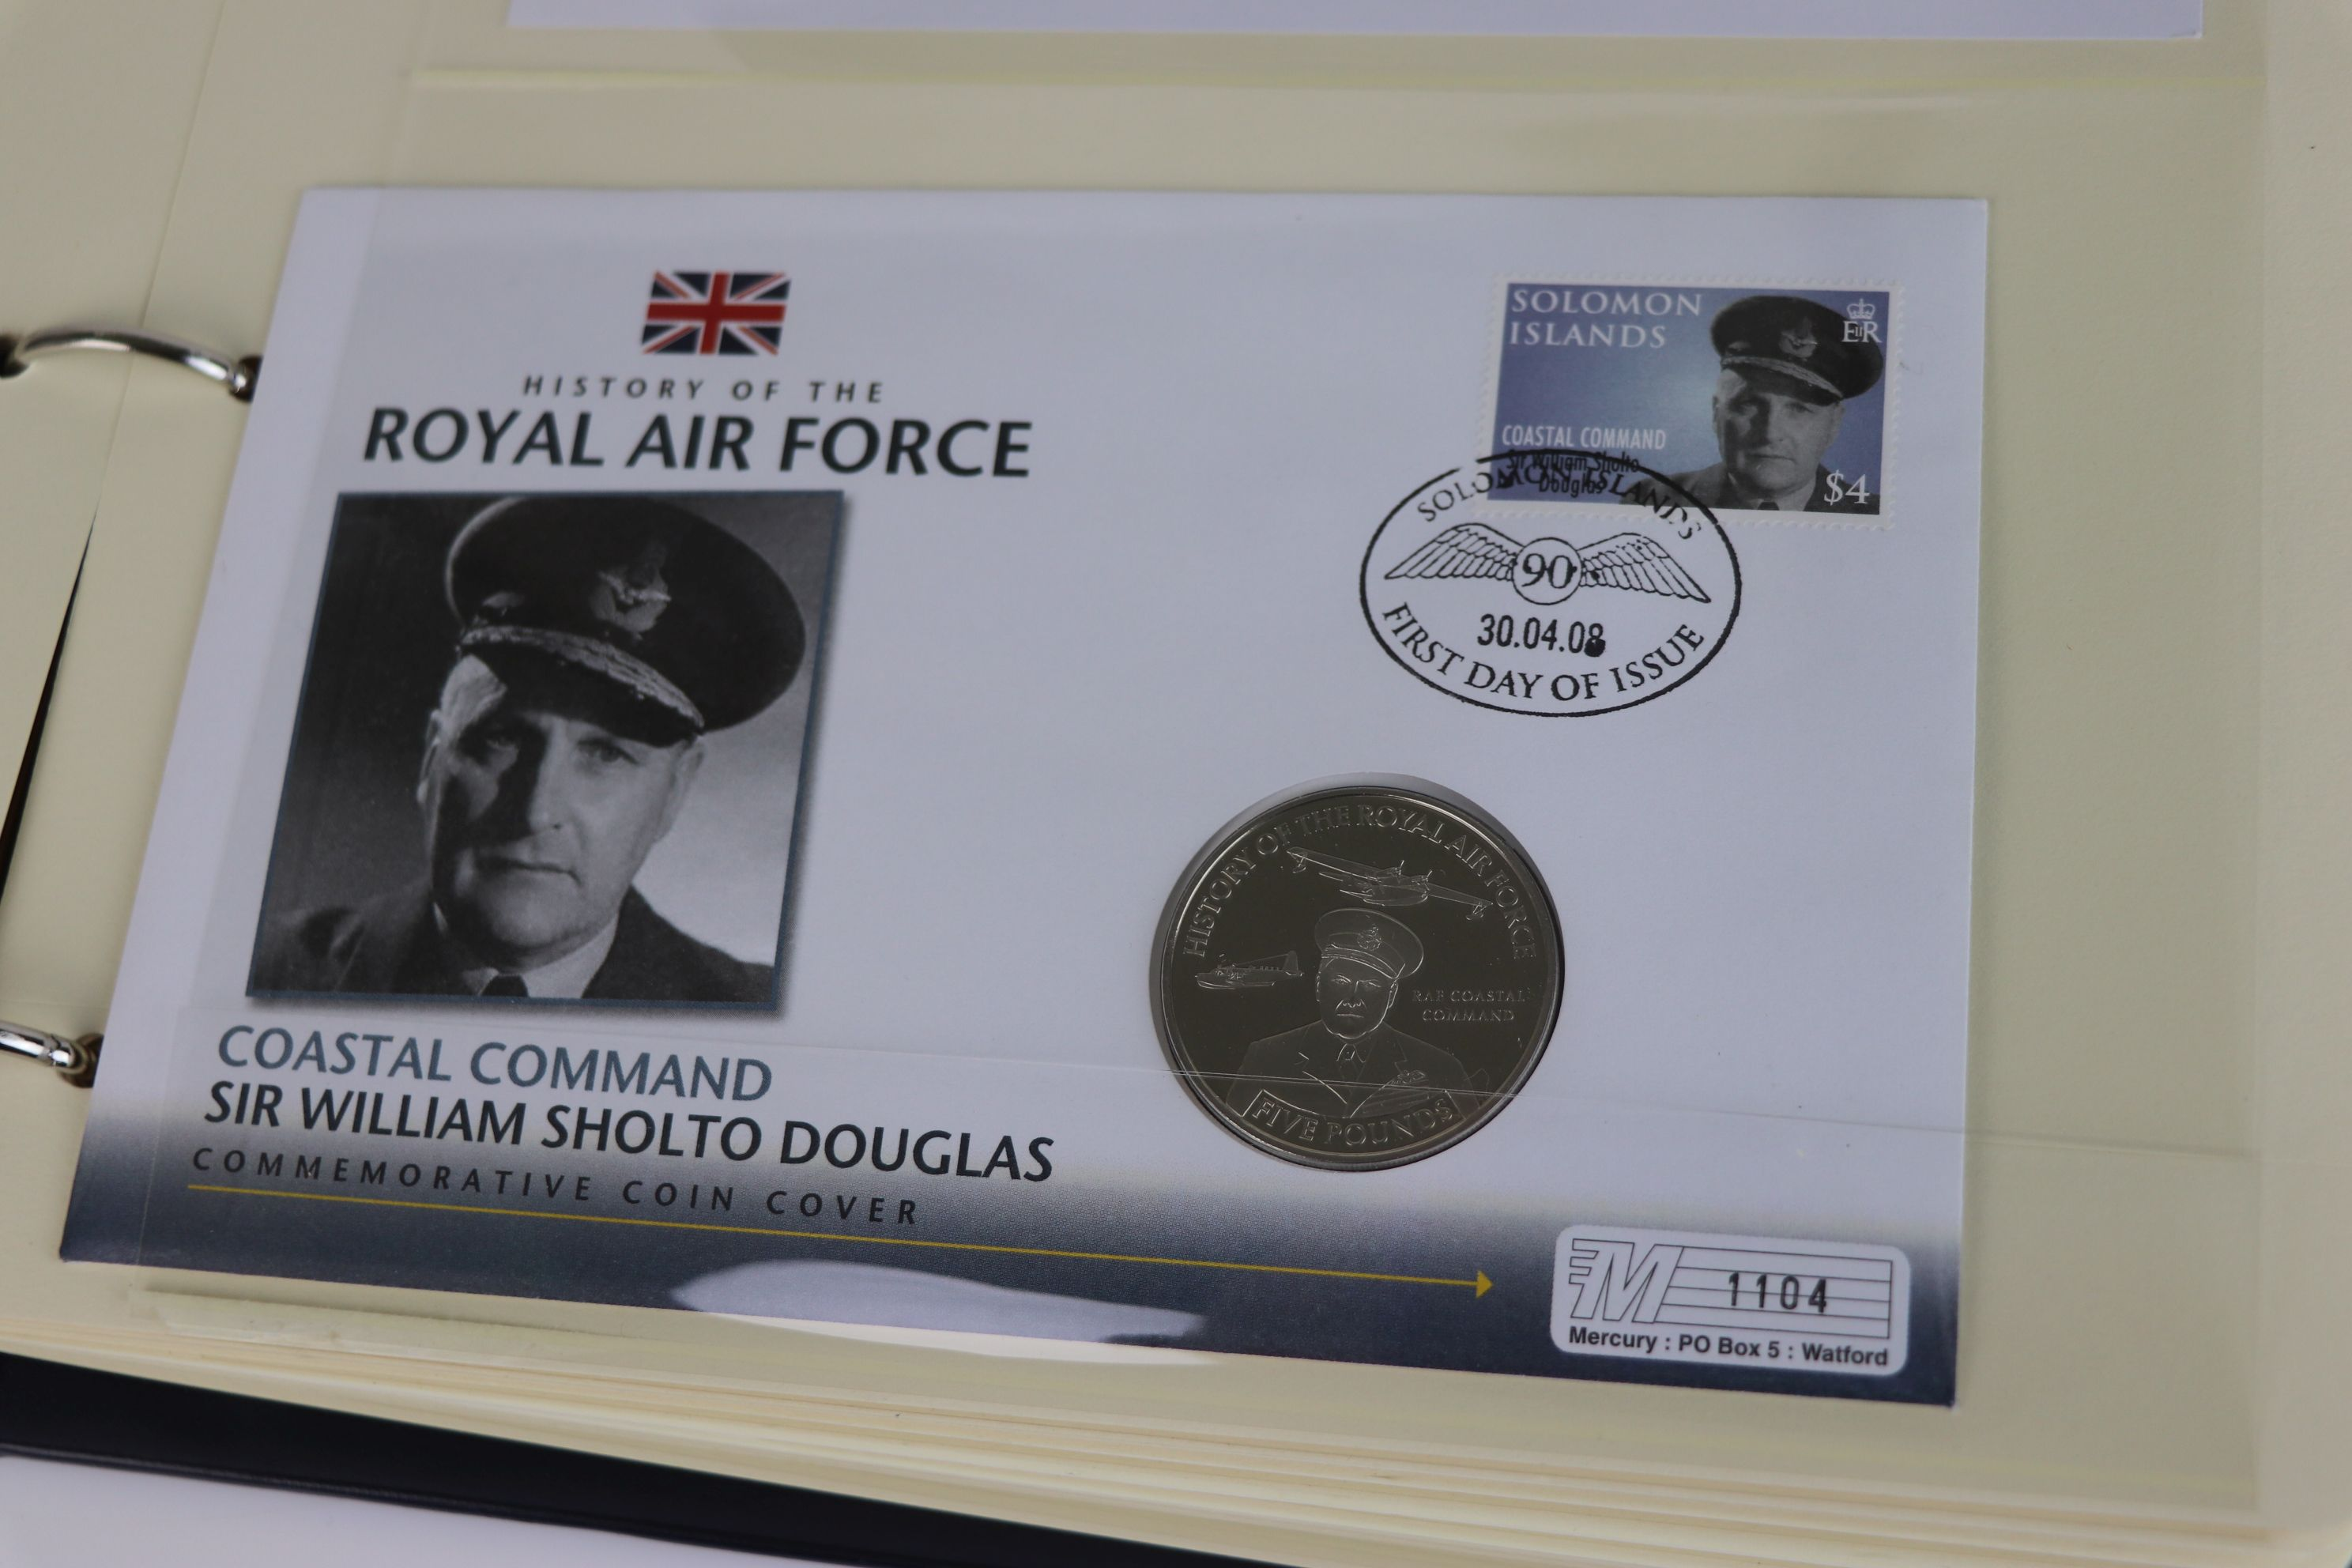 A limited edition Westminster Mint History of the Royal Air Force coin and stamp cover collection to - Image 7 of 16